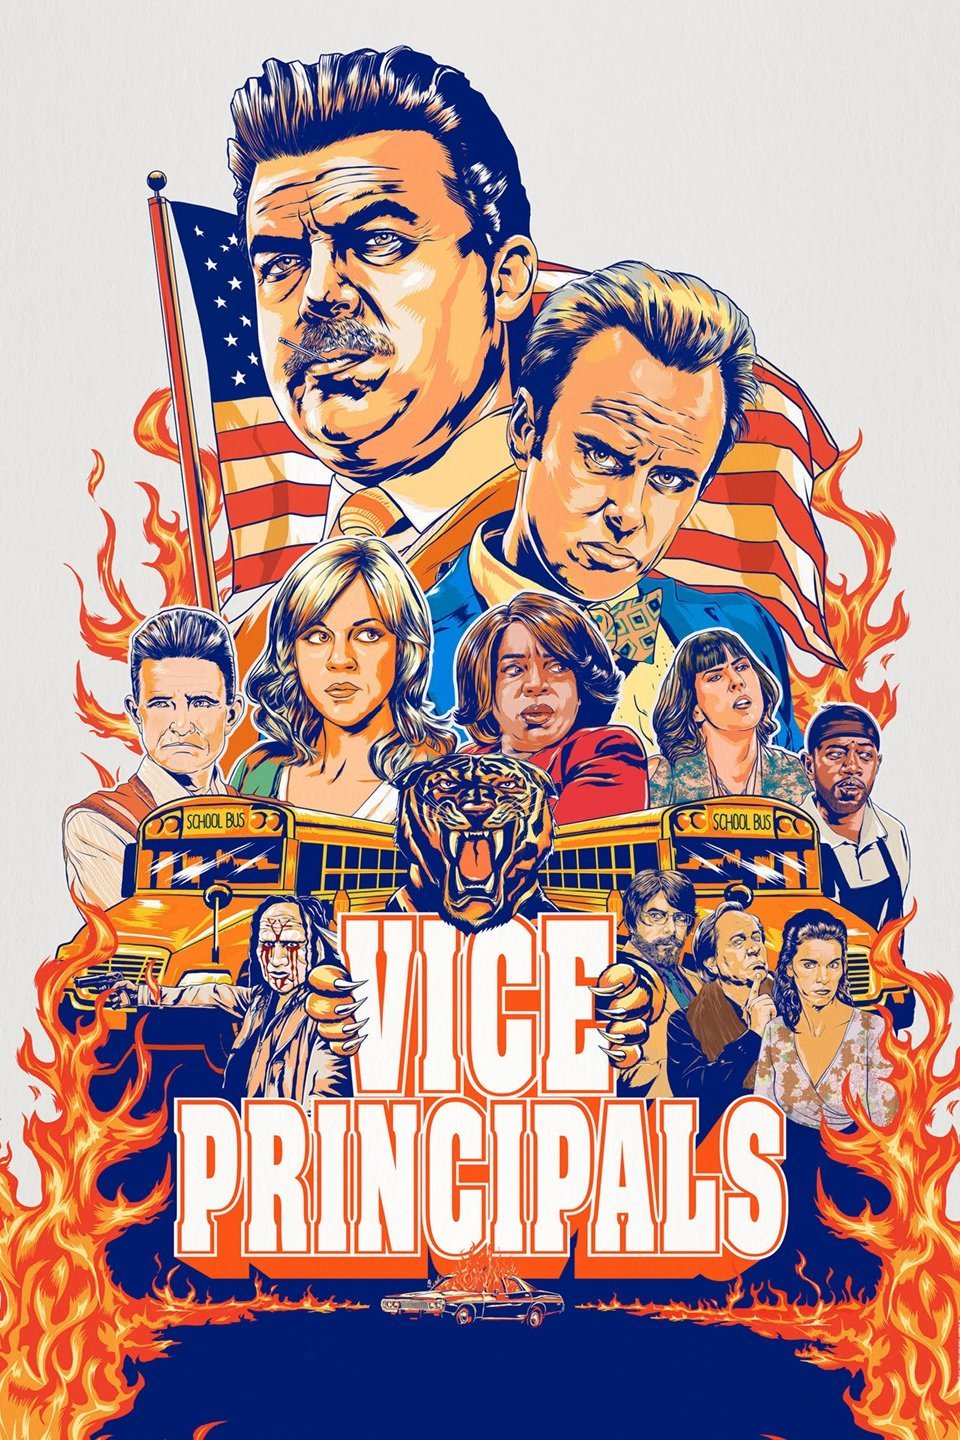 Vice Principals Season 2 Episode 4 Download HDTV 480p